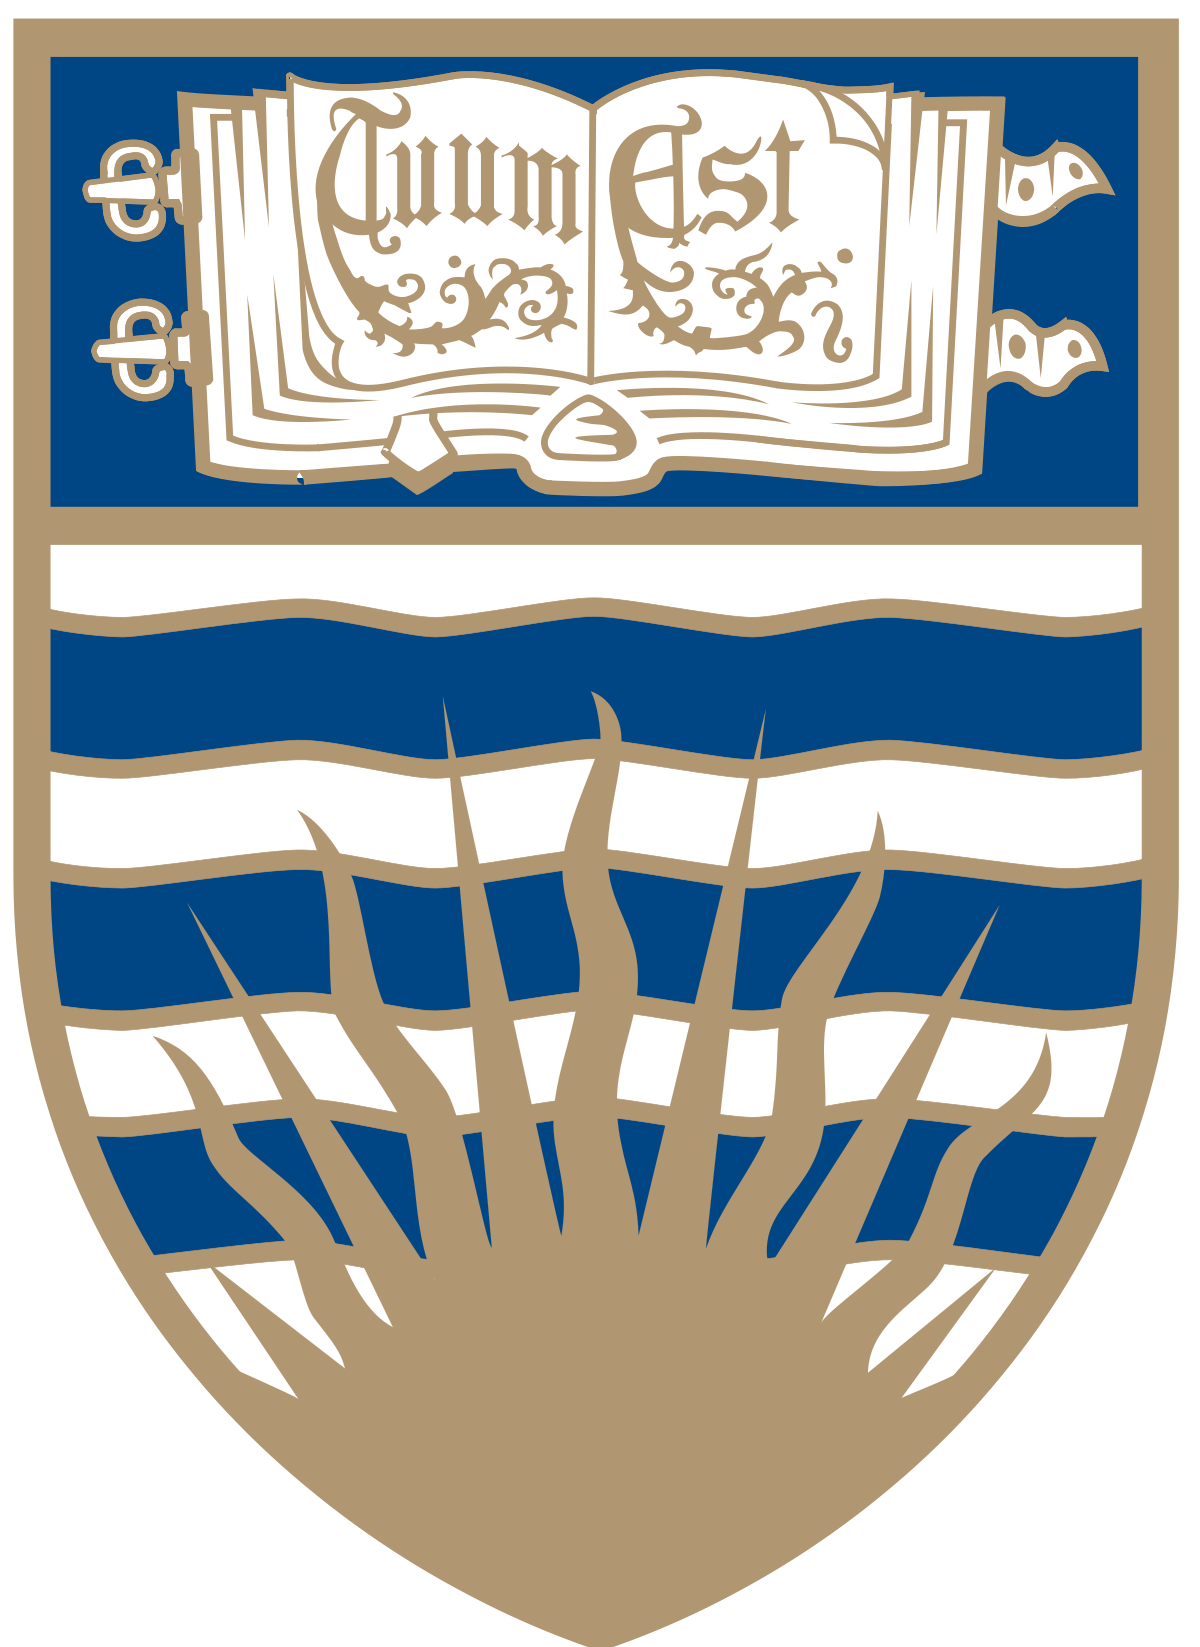 university of british columbia blue white and gold badge